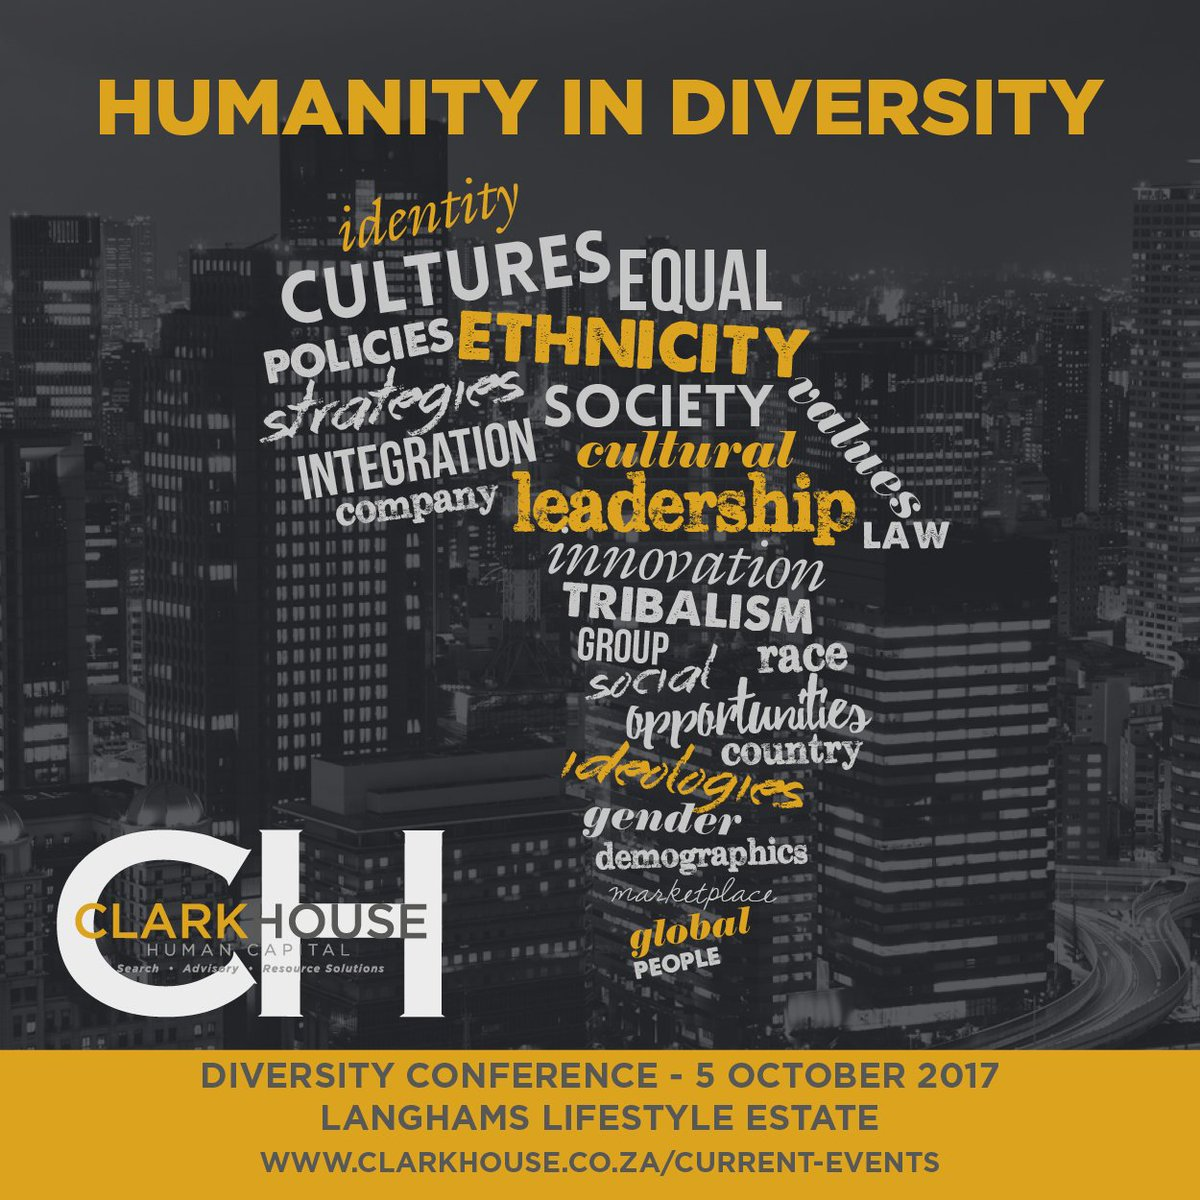 C-Suite Execs in-the-know will learn the science of #diversity at #CHDiversity17. DON&#39;T MISS OUT!  http:// bit.ly/2vVePbX  &nbsp;  <br>http://pic.twitter.com/OWV3zJOXWp